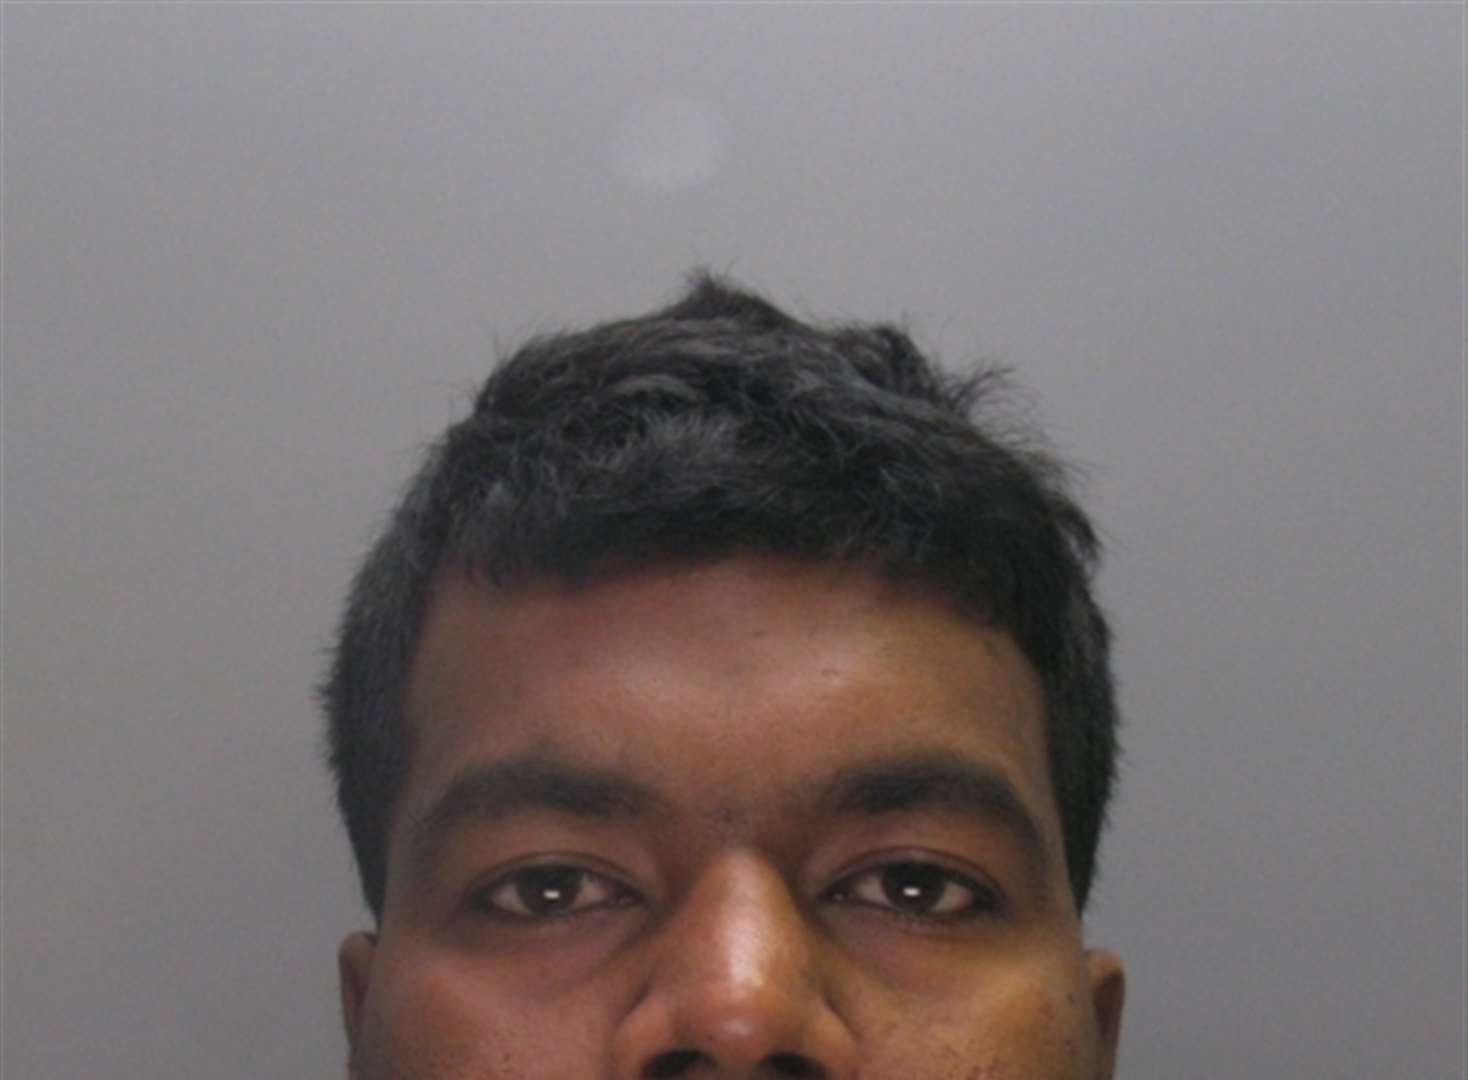 Man jailed for 'sophisticated' money laundering scam